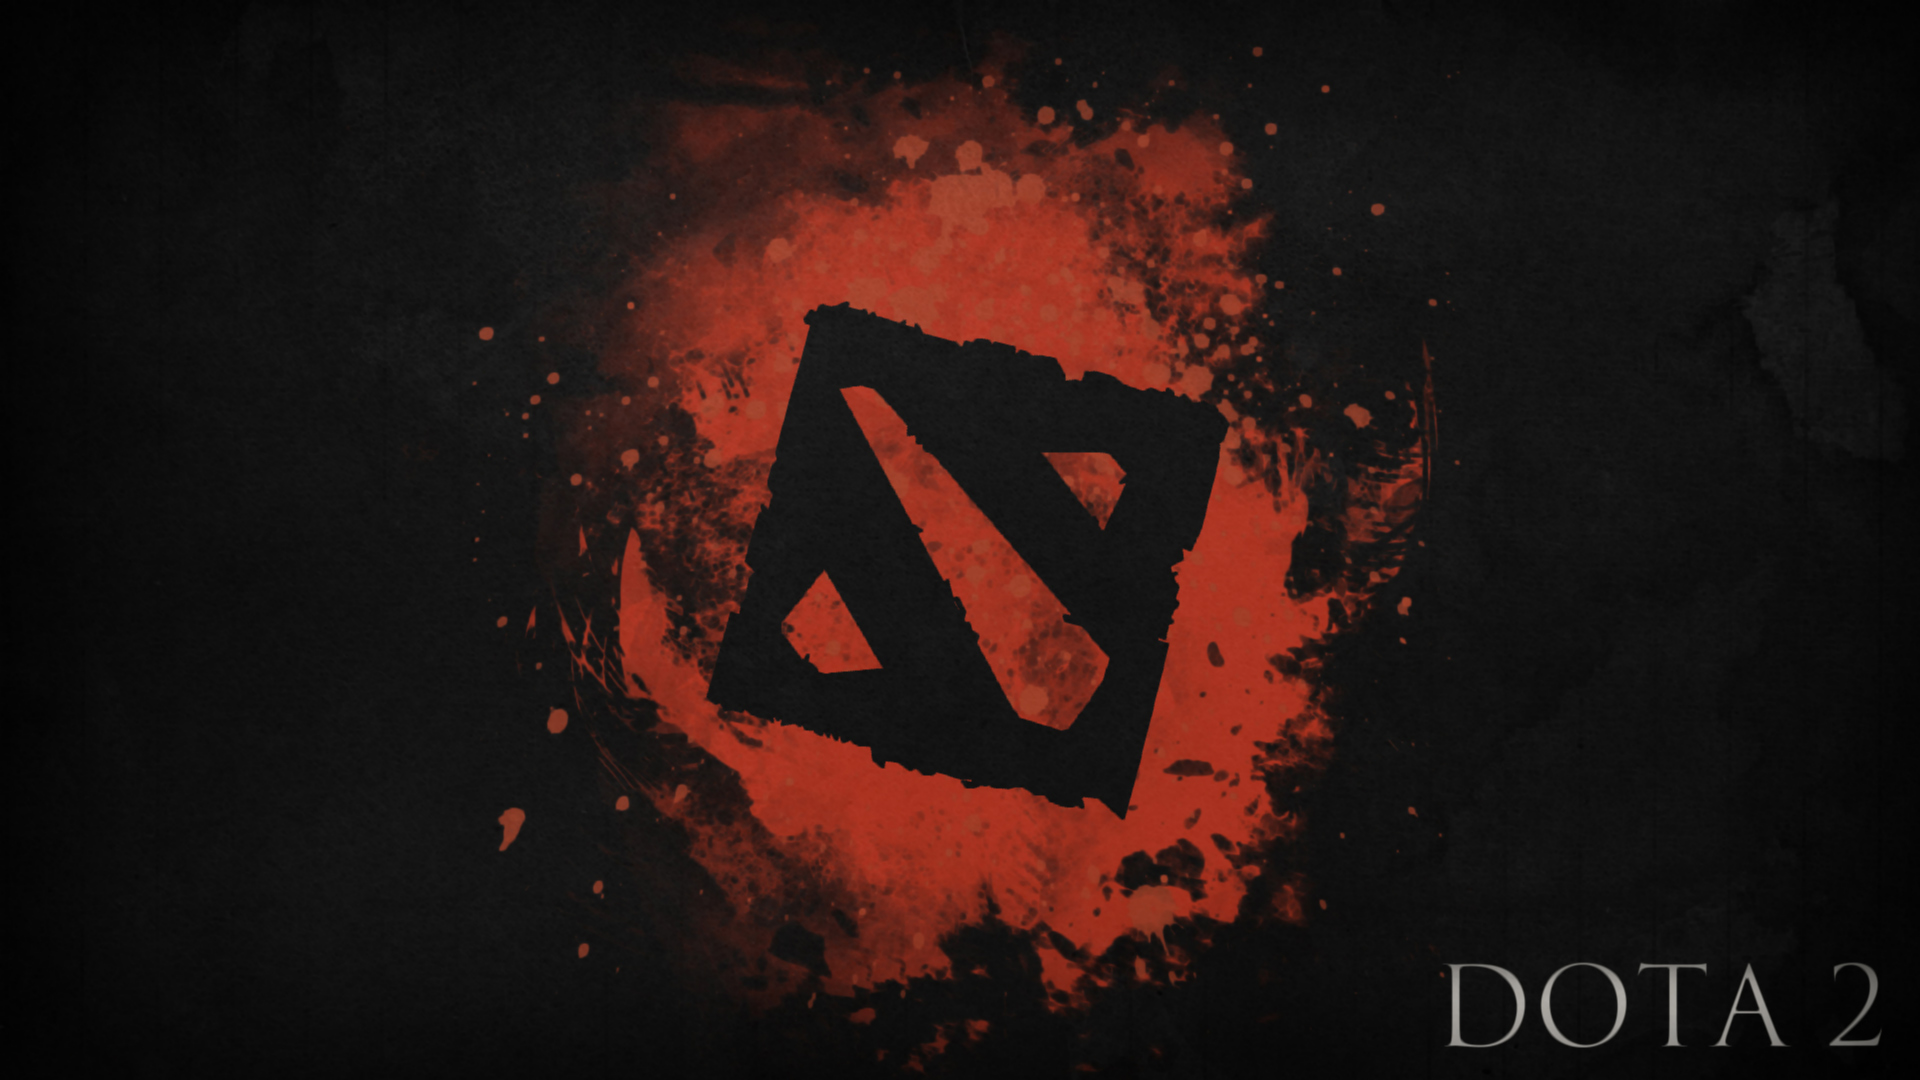 dota 2 logo 1920x1080 20 wallpaper hd